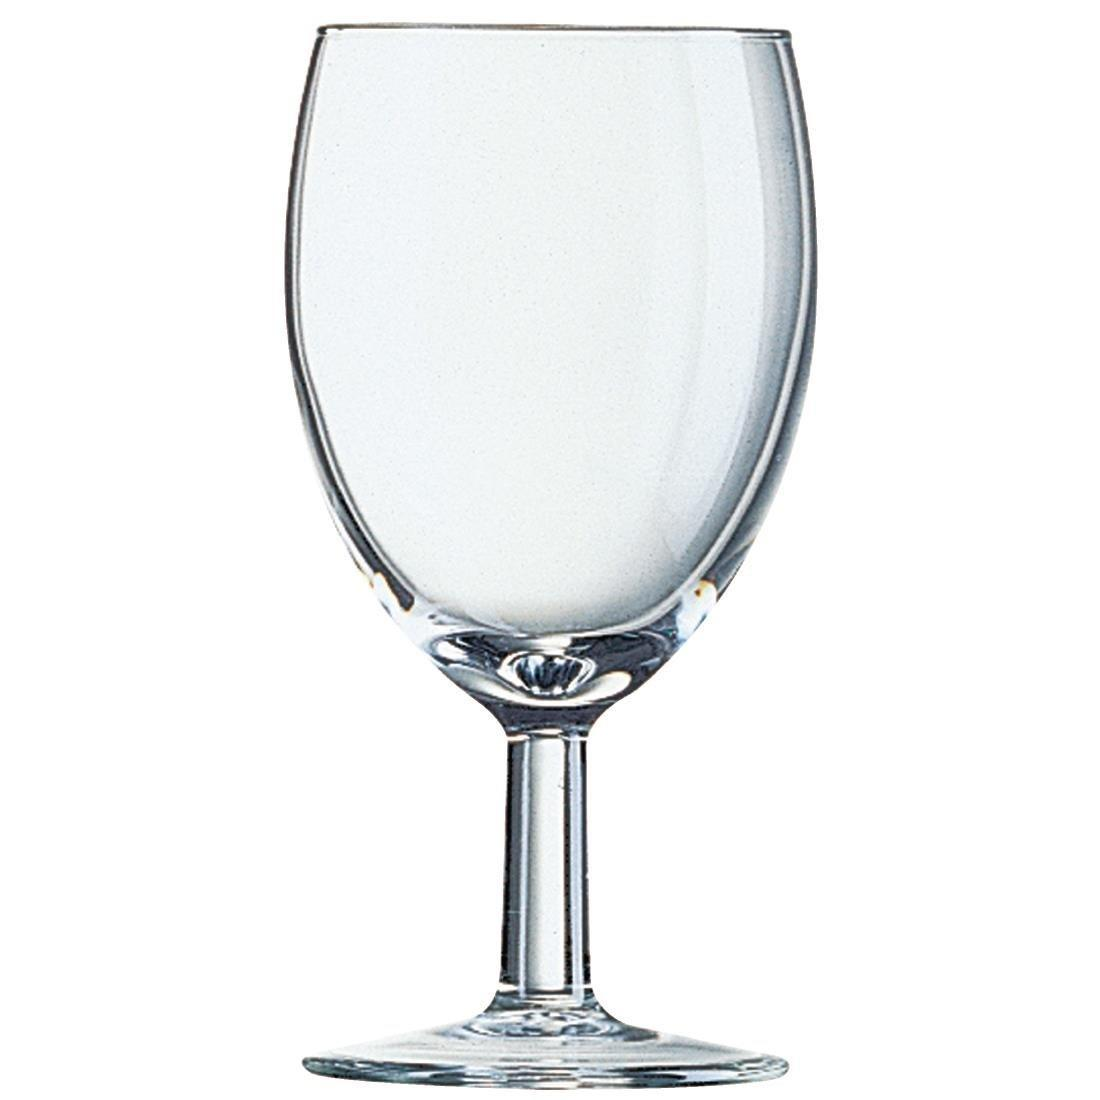 Arc Savoie Goblet - 240ml 8.5oz L&CE175ml (Box 48) - CJ507